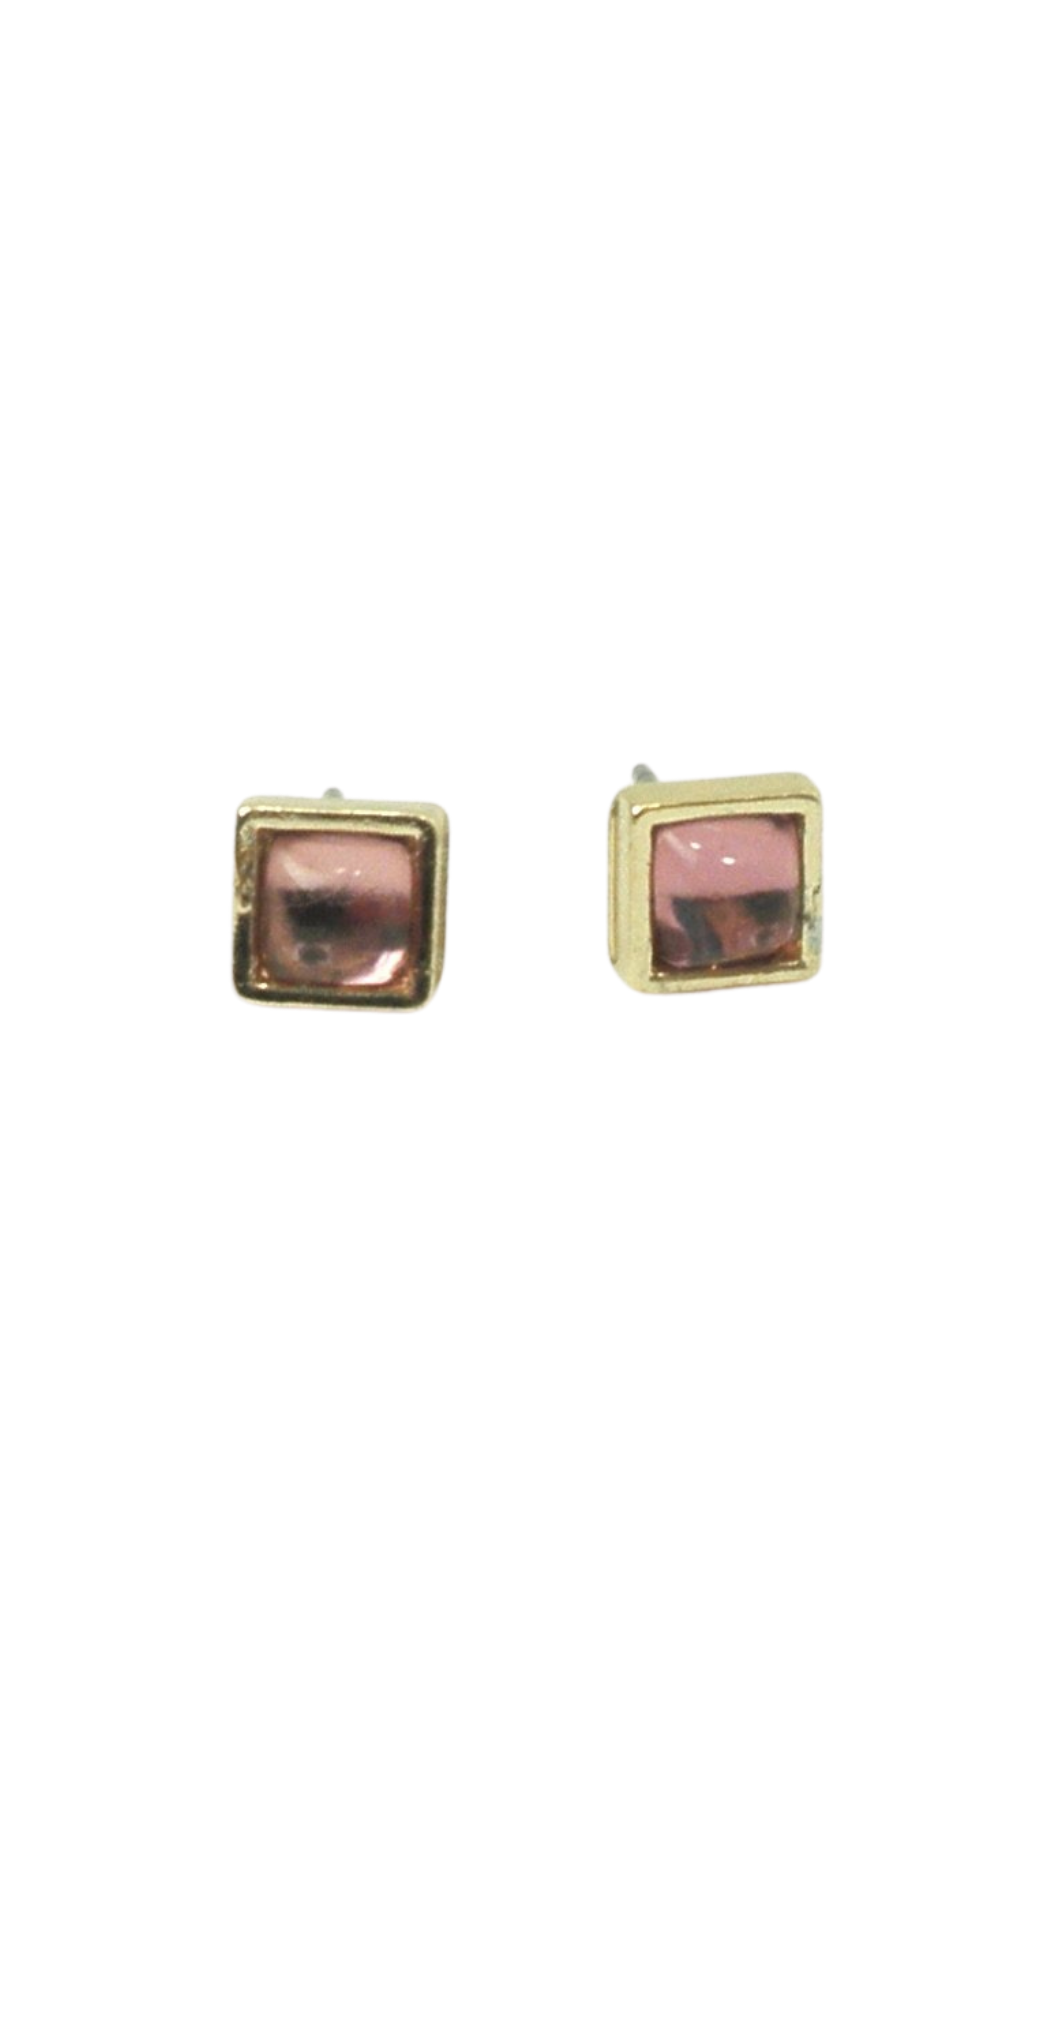 Gold Square Studs with Shiny Pink Design - The Fashion Foundation - {{ discount designer}}